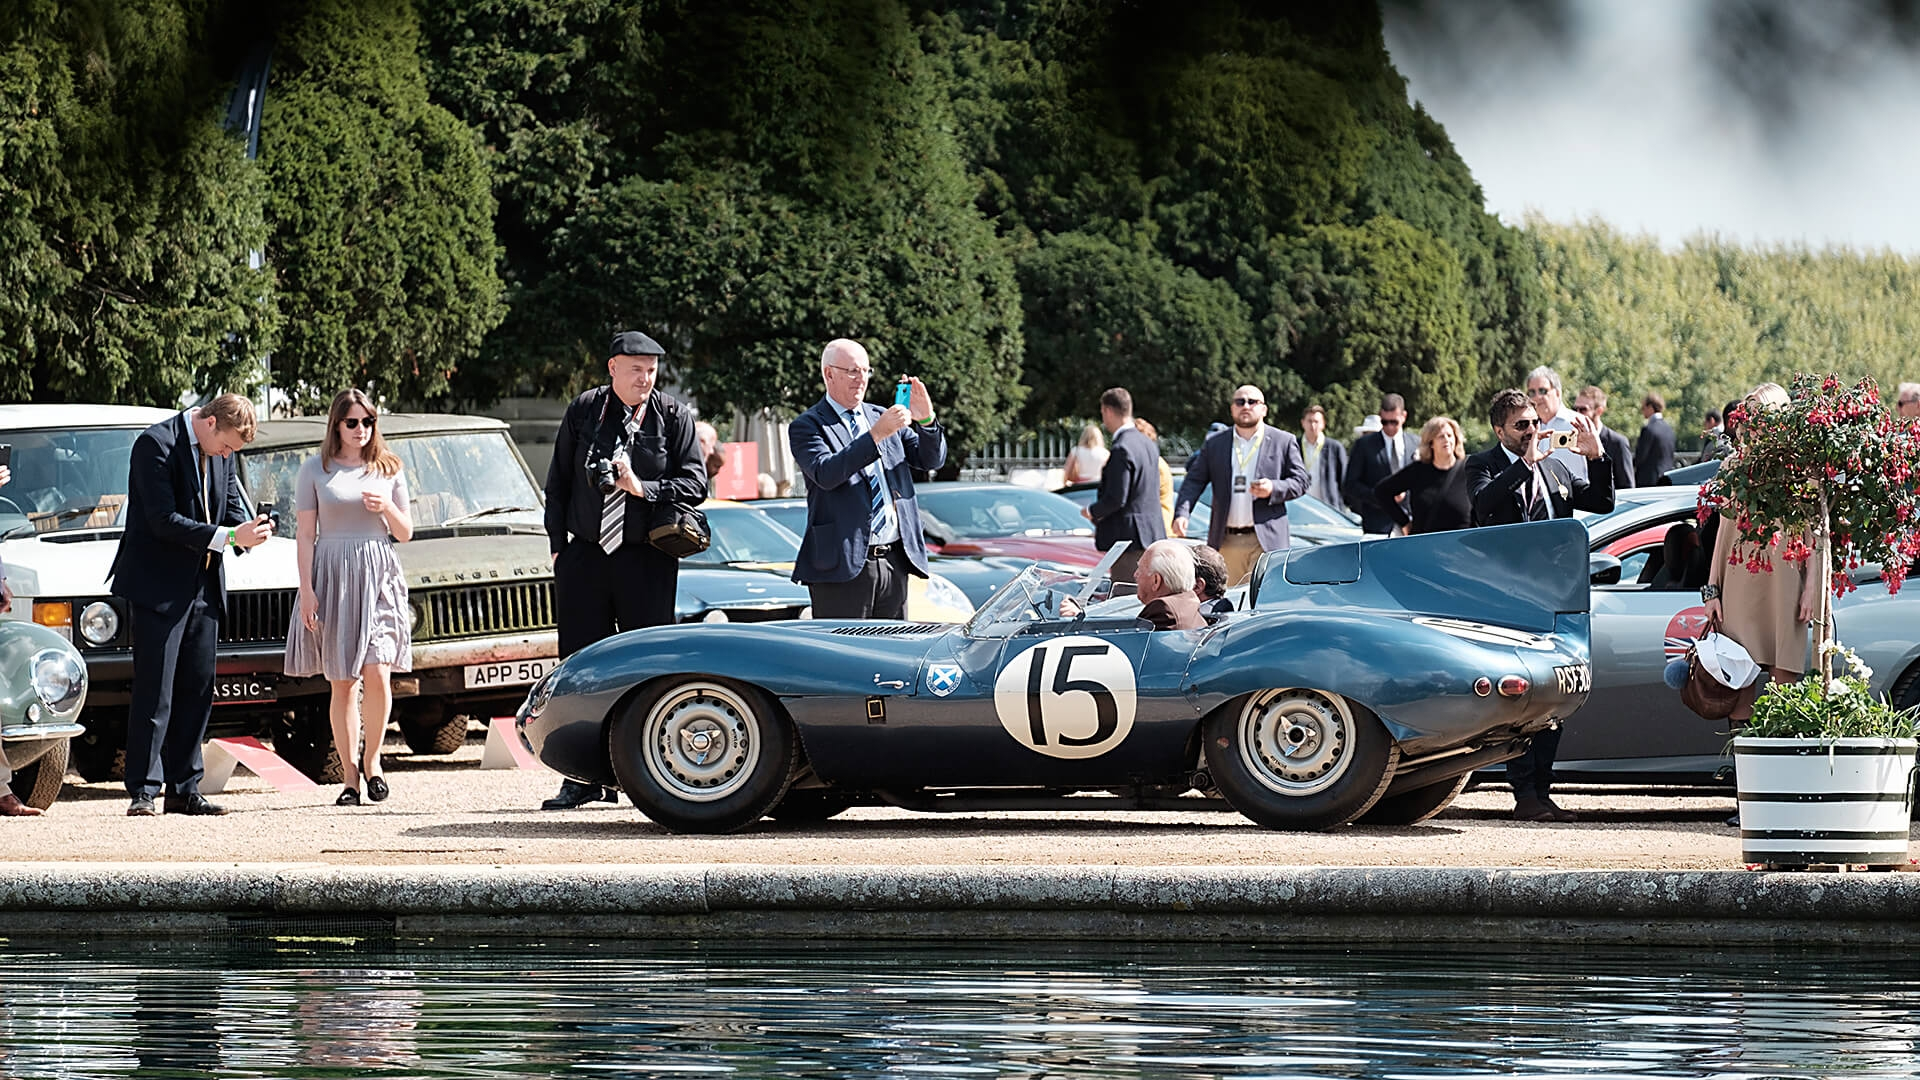 The 2017 Concours of Elegance